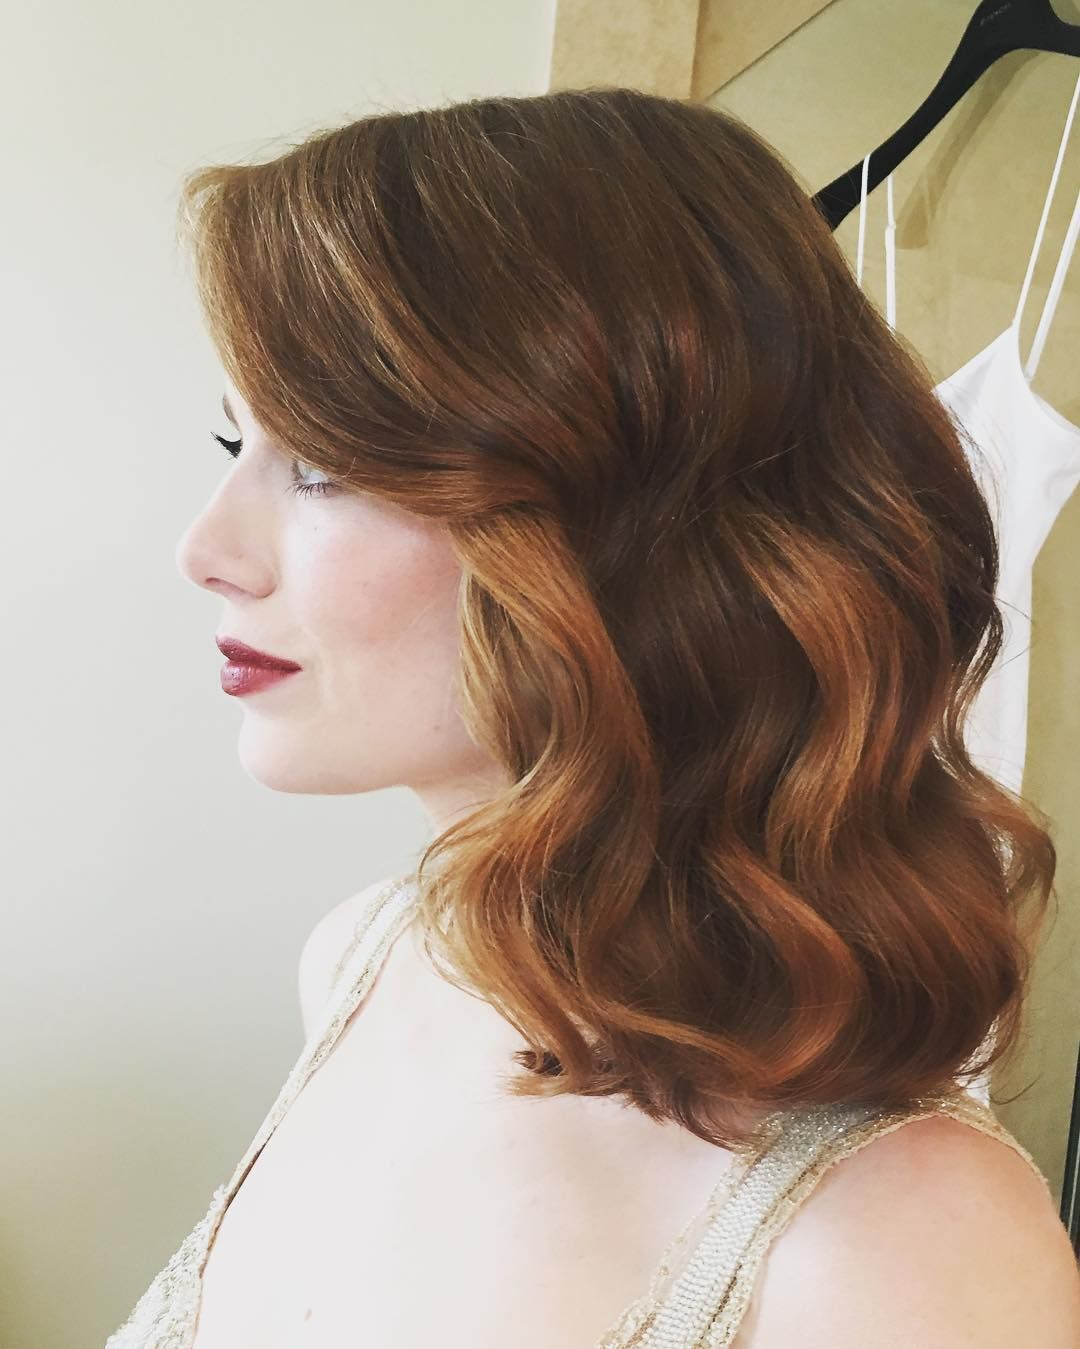 Uh emma stone used only drugstore hair products to create her